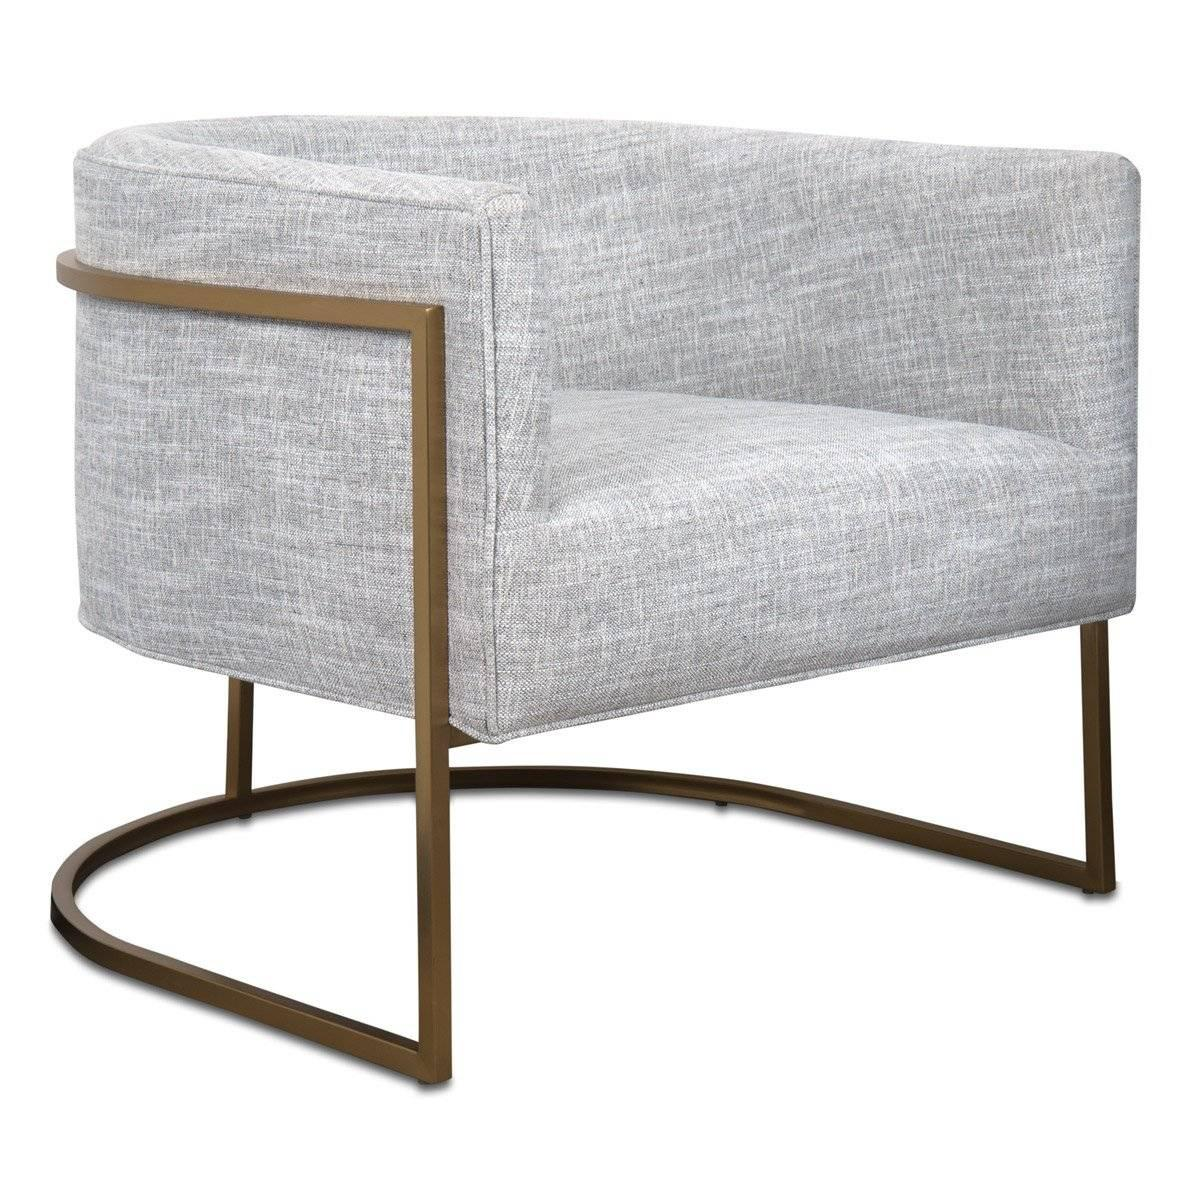 American Mid Century Modern Style Curved Accent Chair In Grey Linen U0026  Brushed Brass Frame